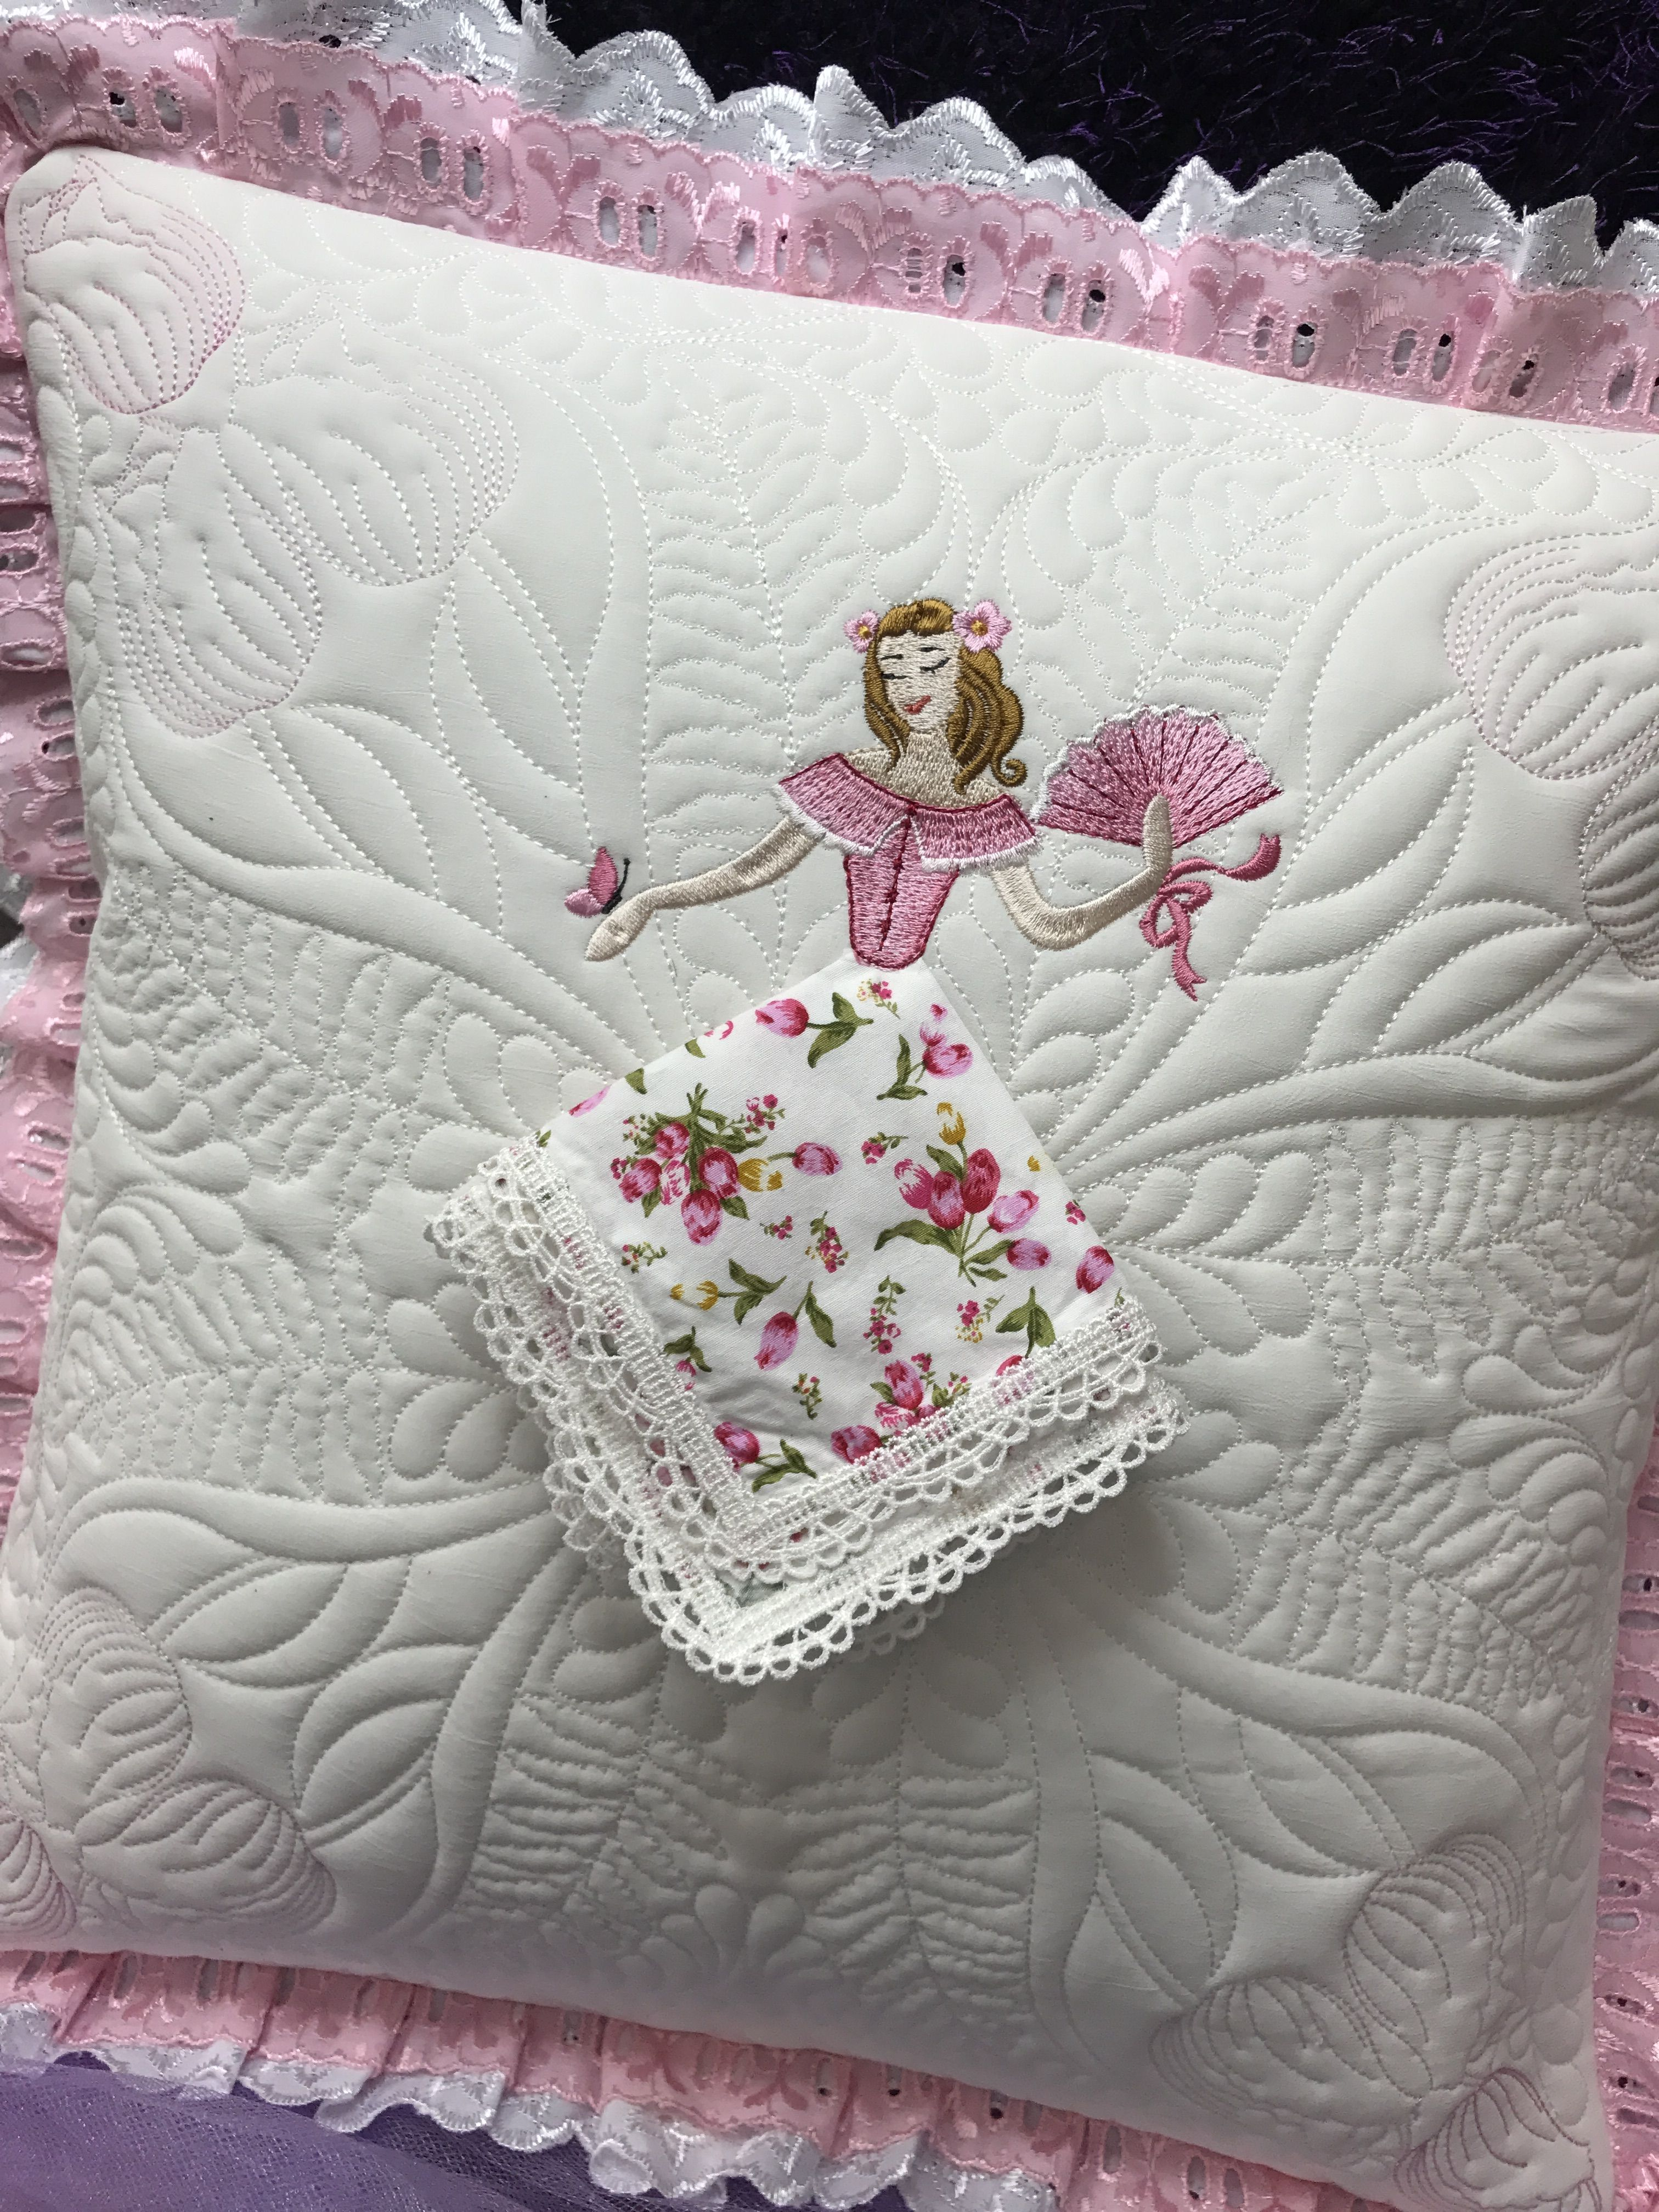 Pin by marsha mills on Crafting | Brazilian embroidery